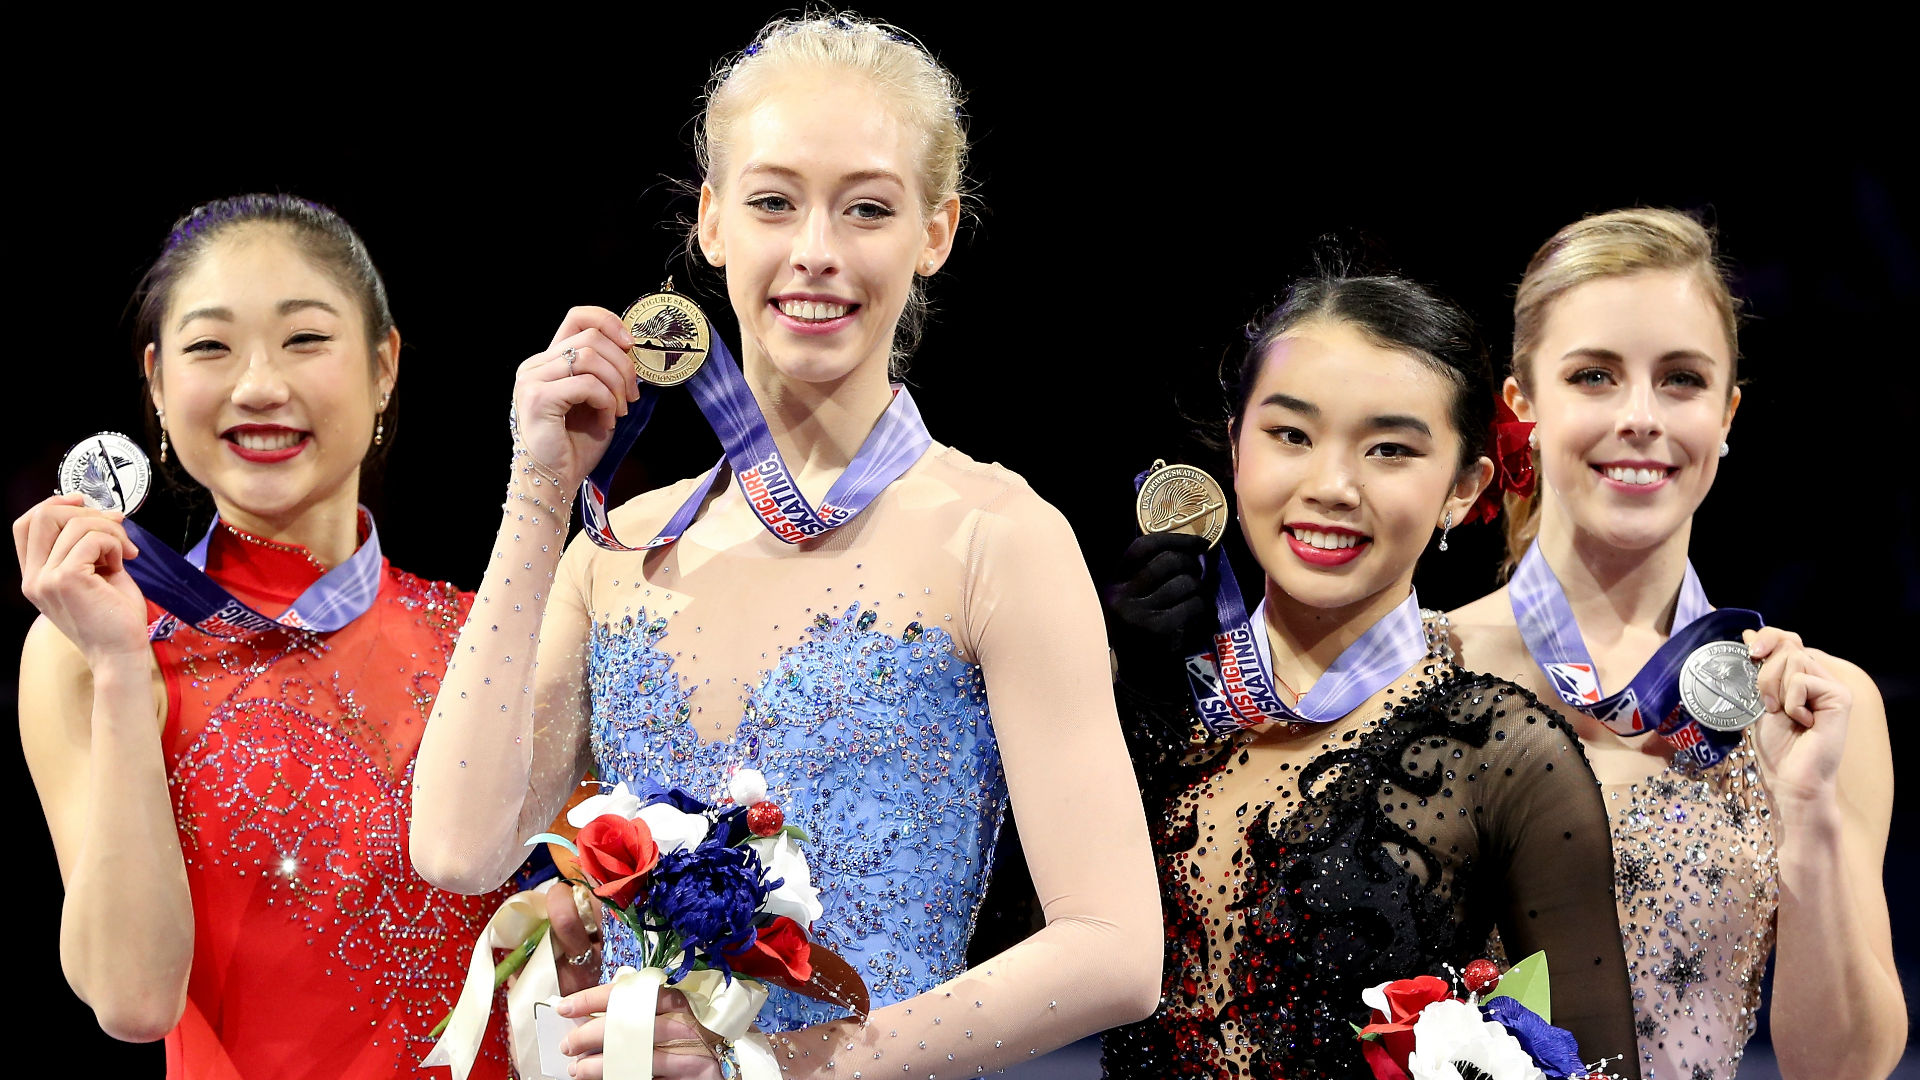 On-the-rise Bradie Tennell wins women's U.S. figure skating title